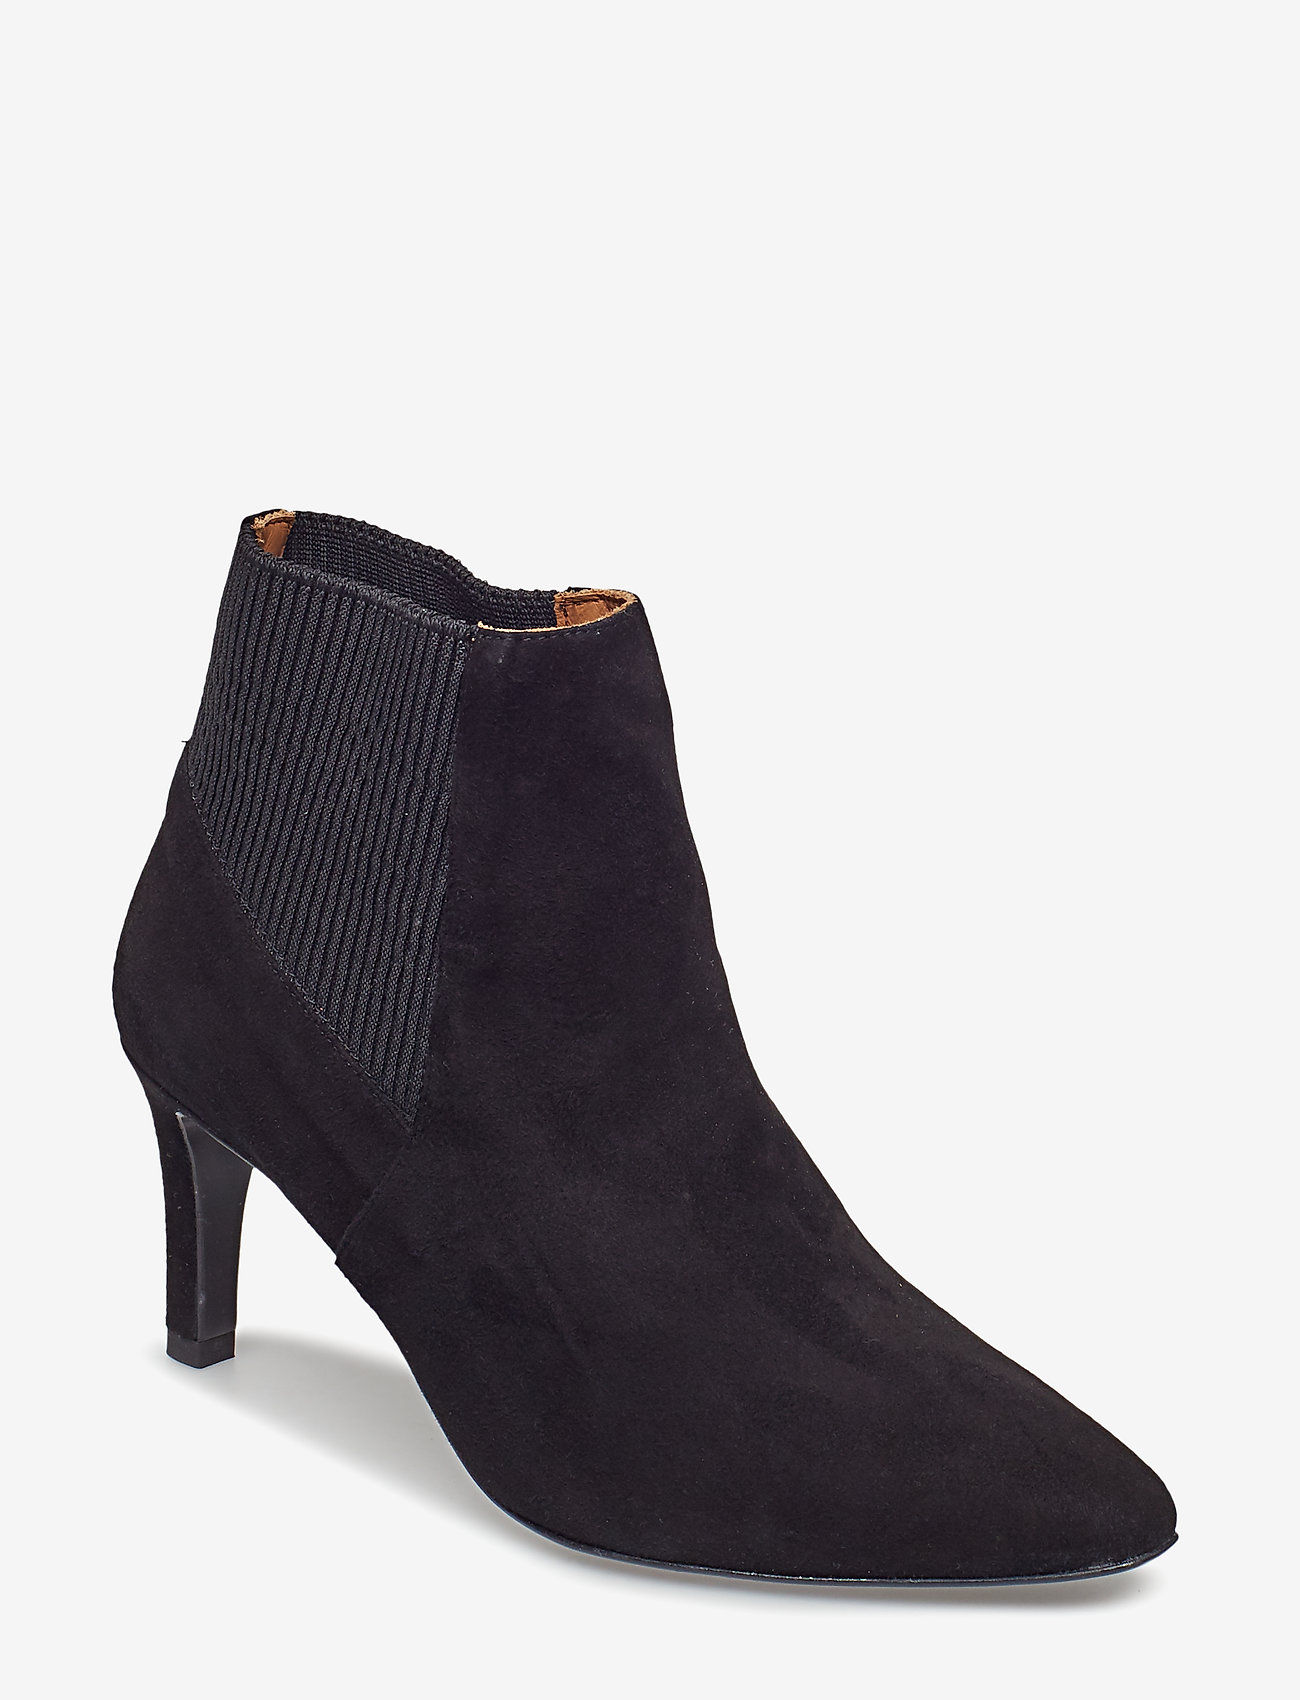 Flattered - Sasha Black Suede - ankle boots with heel - black